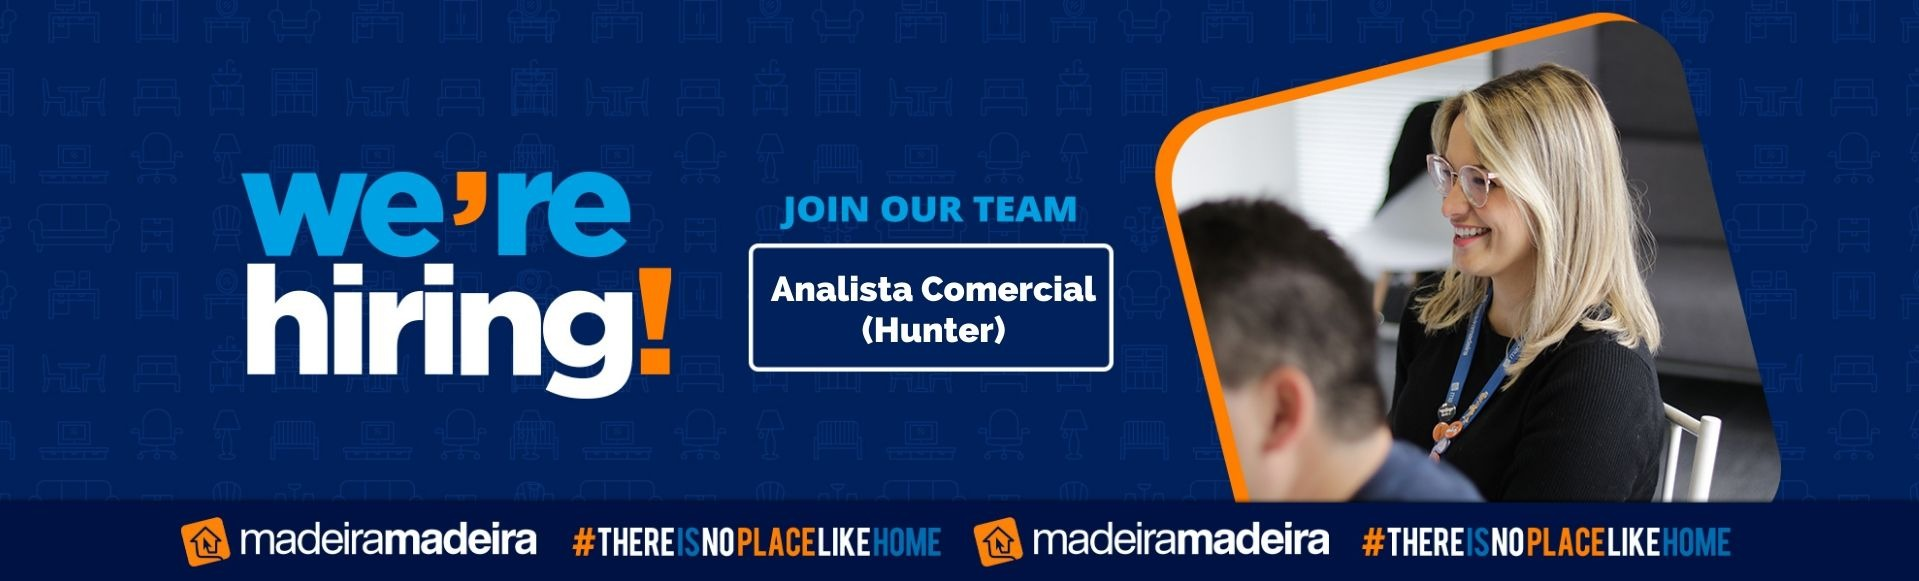 Analista Comercial (Hunter)